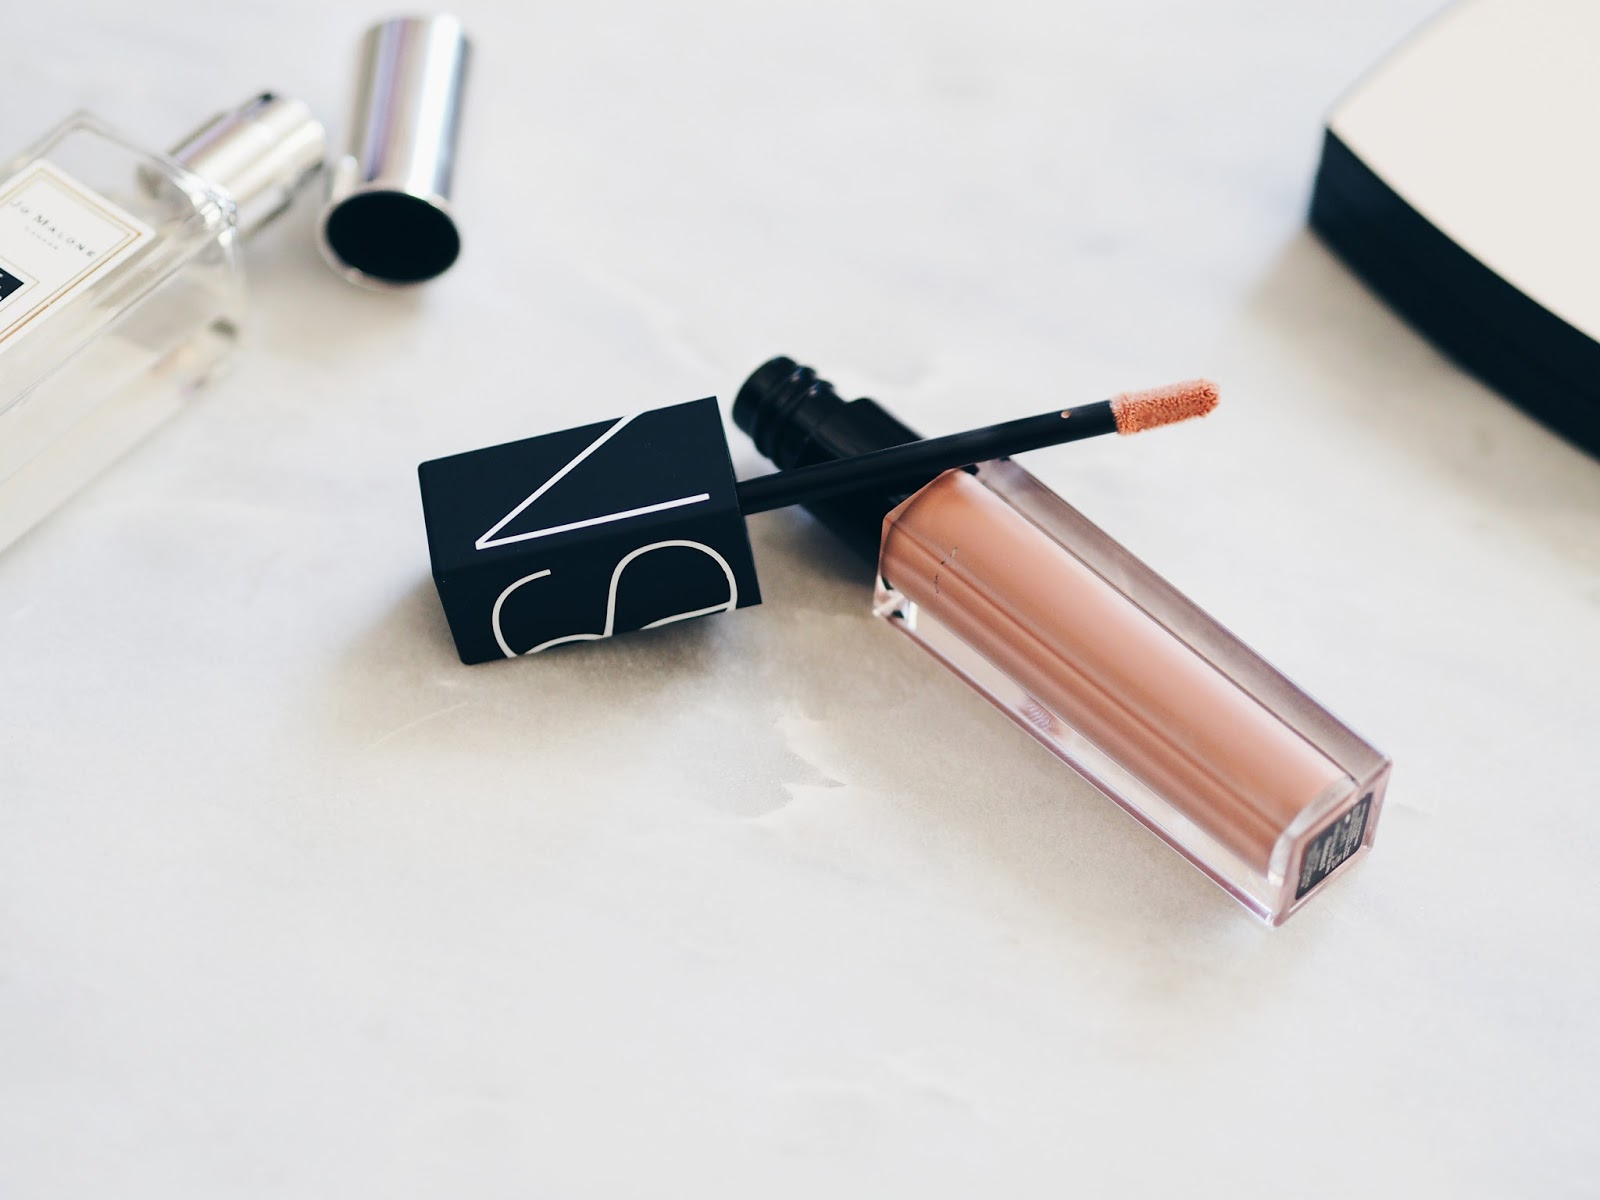 NARS Velvet Lip Glide Stripped Nude Lip